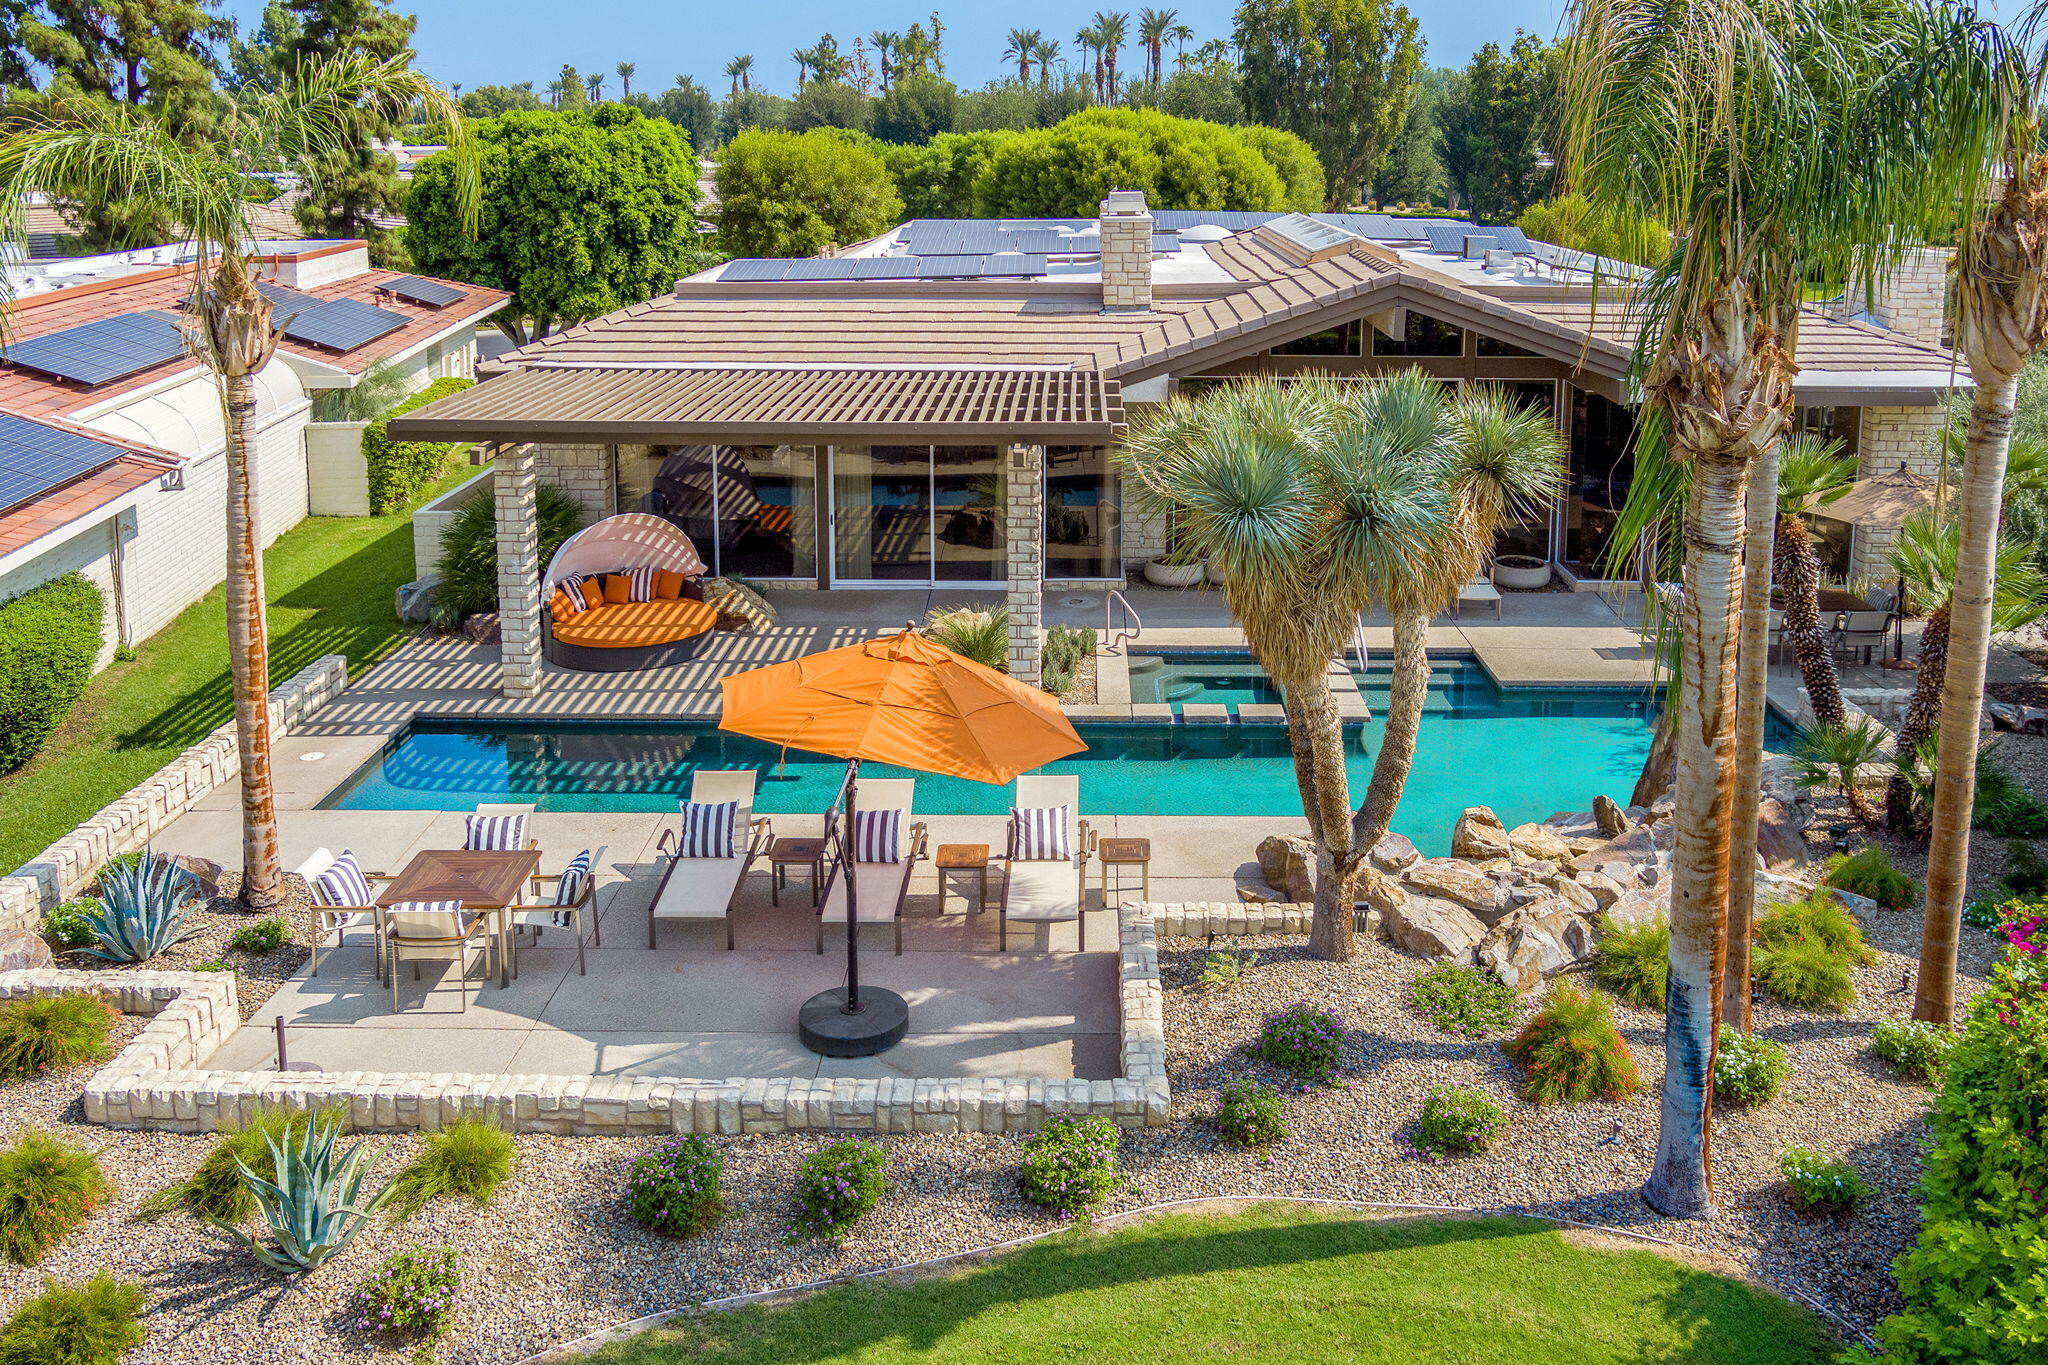 This is a highly treasured 4BD/ 6BA Shaughnessy floorplan located in The Club at Morningside. Recently remodeled with a contemporary flair, this luxurious free-standing home offers picture perfect views of the Santa Rosa Mountains to the southwest and is situated beside a beautifully manicured lake.   Gorgeous attention to detail throughout! The dramatic entry leads into a light filled living room with sky-lit vaulted ceiling, walls of glass infuse beautiful views into the living space. Details include a full bar with large capacity wine refrigeration system, lots of seating, stacked travertine stone fireplace wall, porcelain floors, water filtration system, newer HVAC, savant audio system and solar.    An opportunity like this rarely comes on the market! This is a private entertainer's dream with fabulous outdoor amenities. The magnificent wrap around veranda offers side and rear patios, security for your pet, an amazing outdoor Chef's kitchen with wood burning multi layered meat grill, two built-in gas BBQ's, plus a smoker. Lots of space to relax with family and friends in the large lap pool or oversized spa.   Fabulous chefs' kitchen offers quartz counters, chill room pantry, oversized eating area with fireplace and custom cabinetry.   The lavish master suite features a fireplace, dual baths, and walk-in closets. This home offers a large in-law guest suite with sitting room! Two other large guest bedrooms all ensuite.    Don't miss this opportunity!